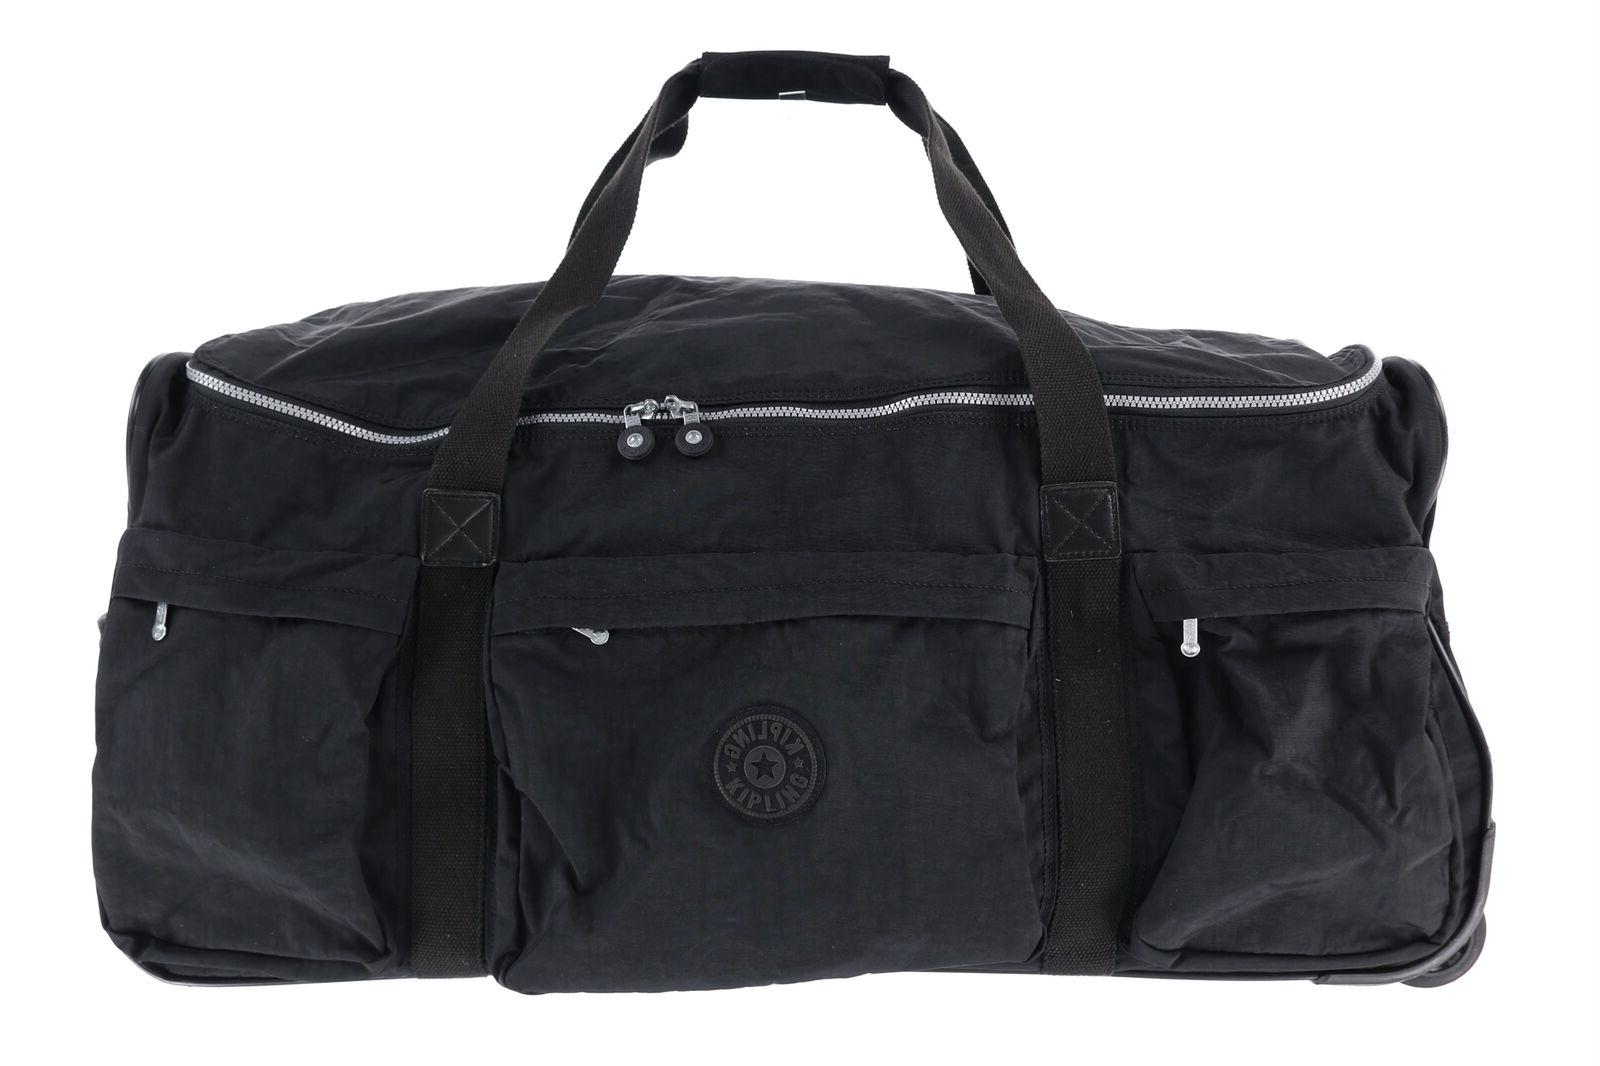 163430 discover 30 rolling black duffle bag